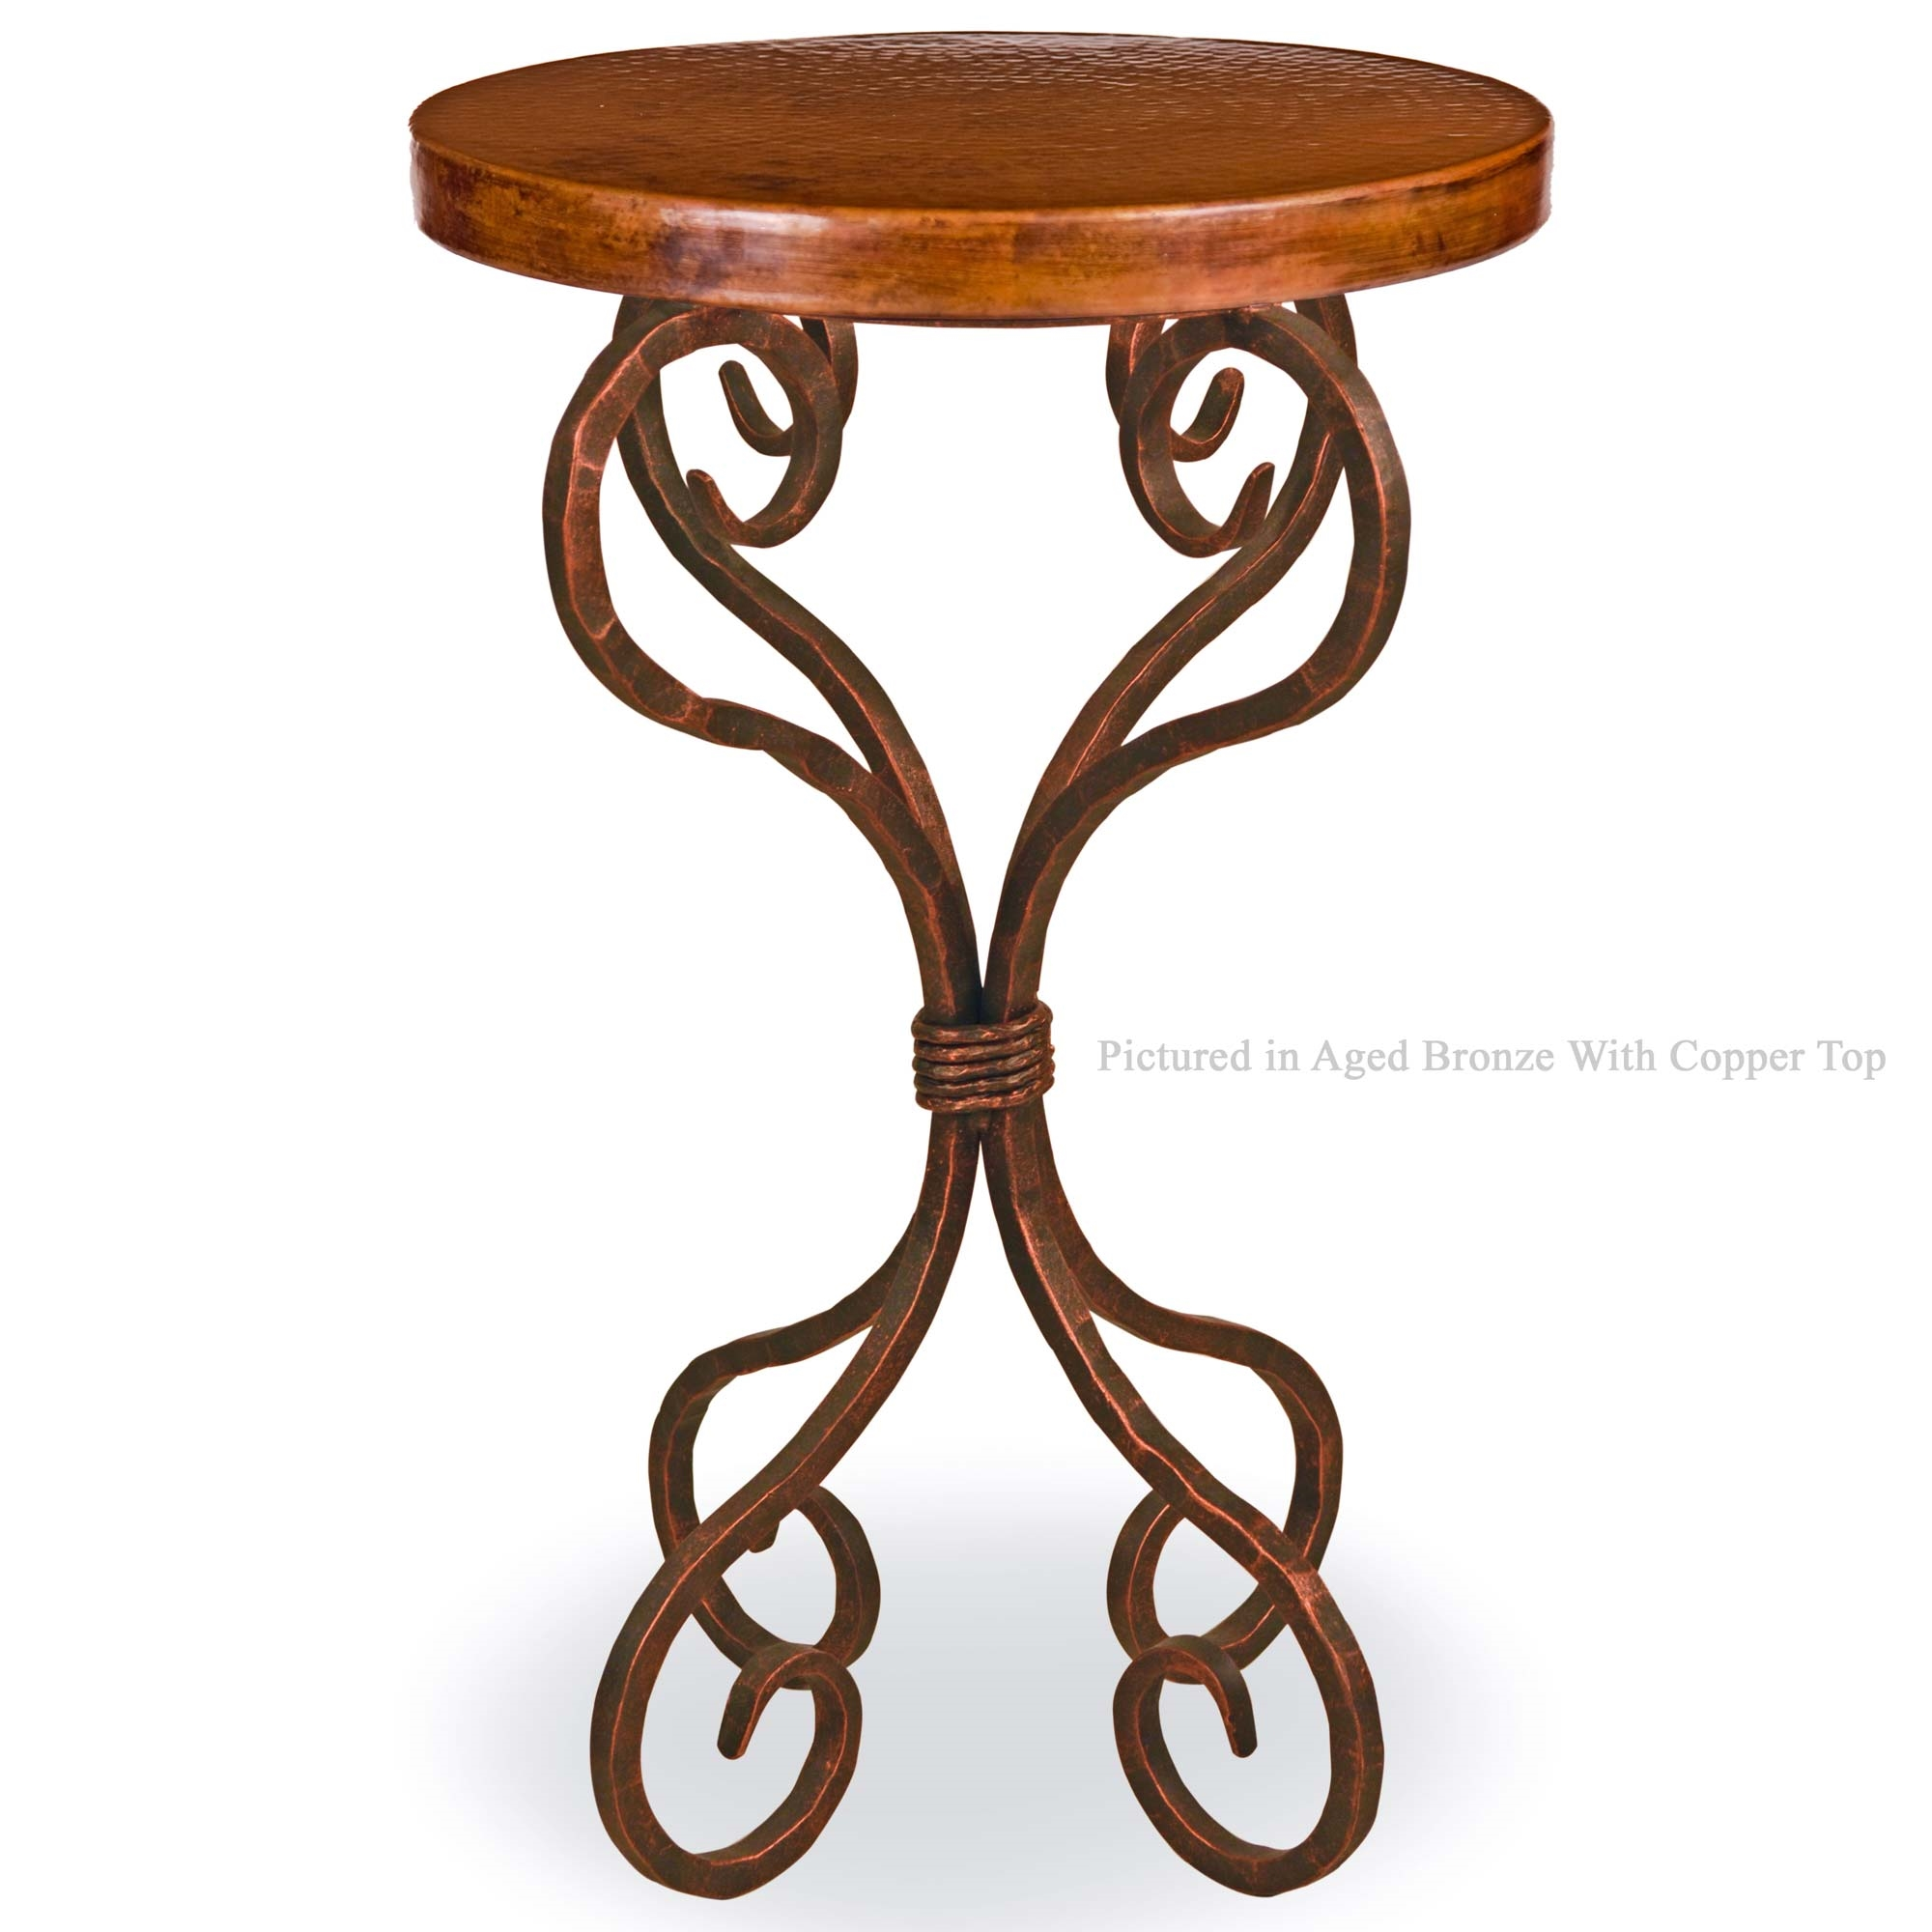 alexander accent table with round copper top mathews twi wrought iron patio larger garden bistro aspen home furniture outside side tables white company outdoor concrete glass end